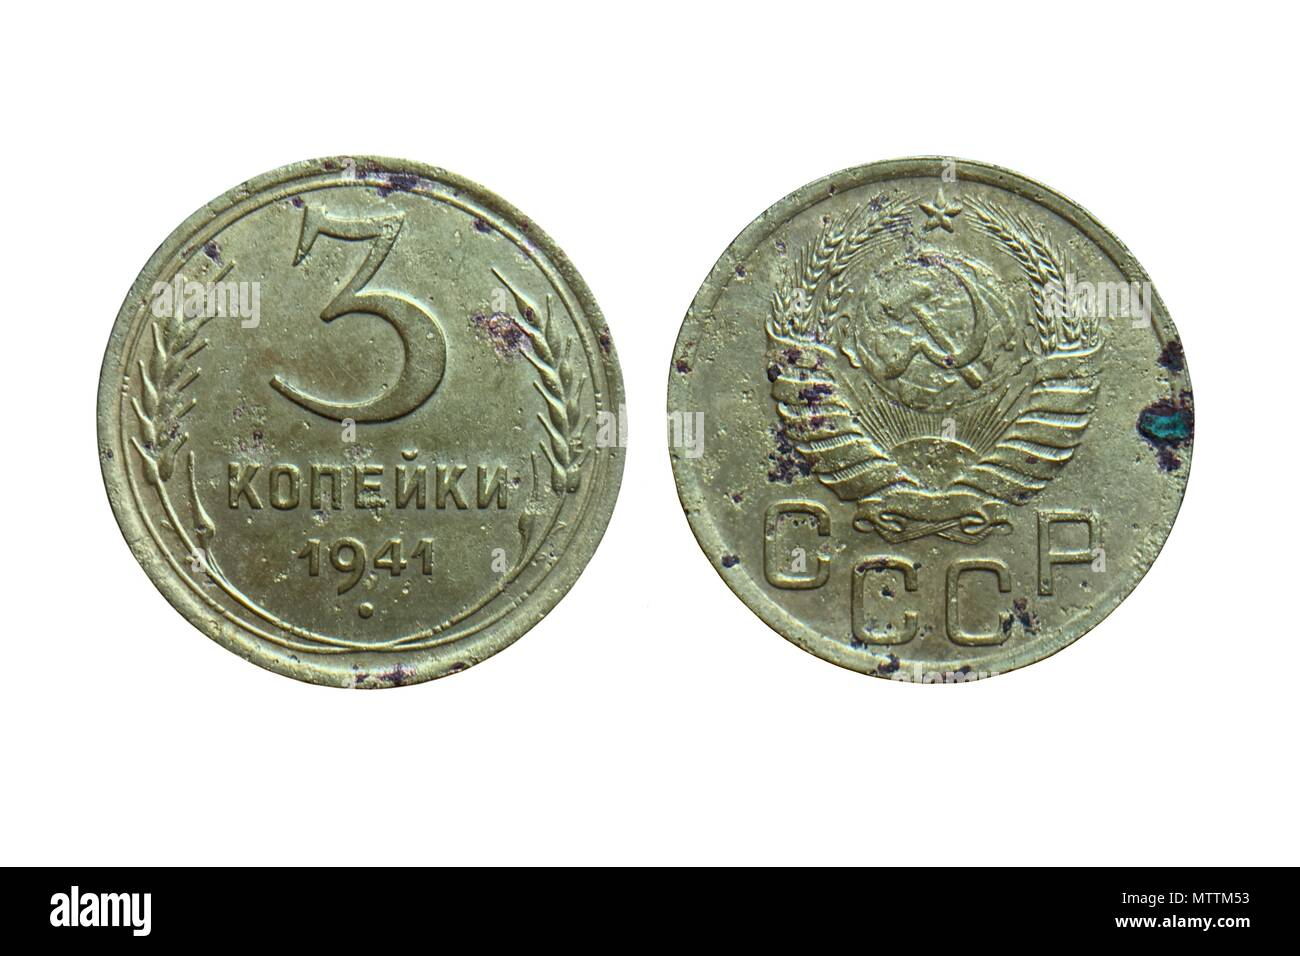 Hammer and Sickle Soviet Union USSR 1987-15 Kopeks Coin Russia